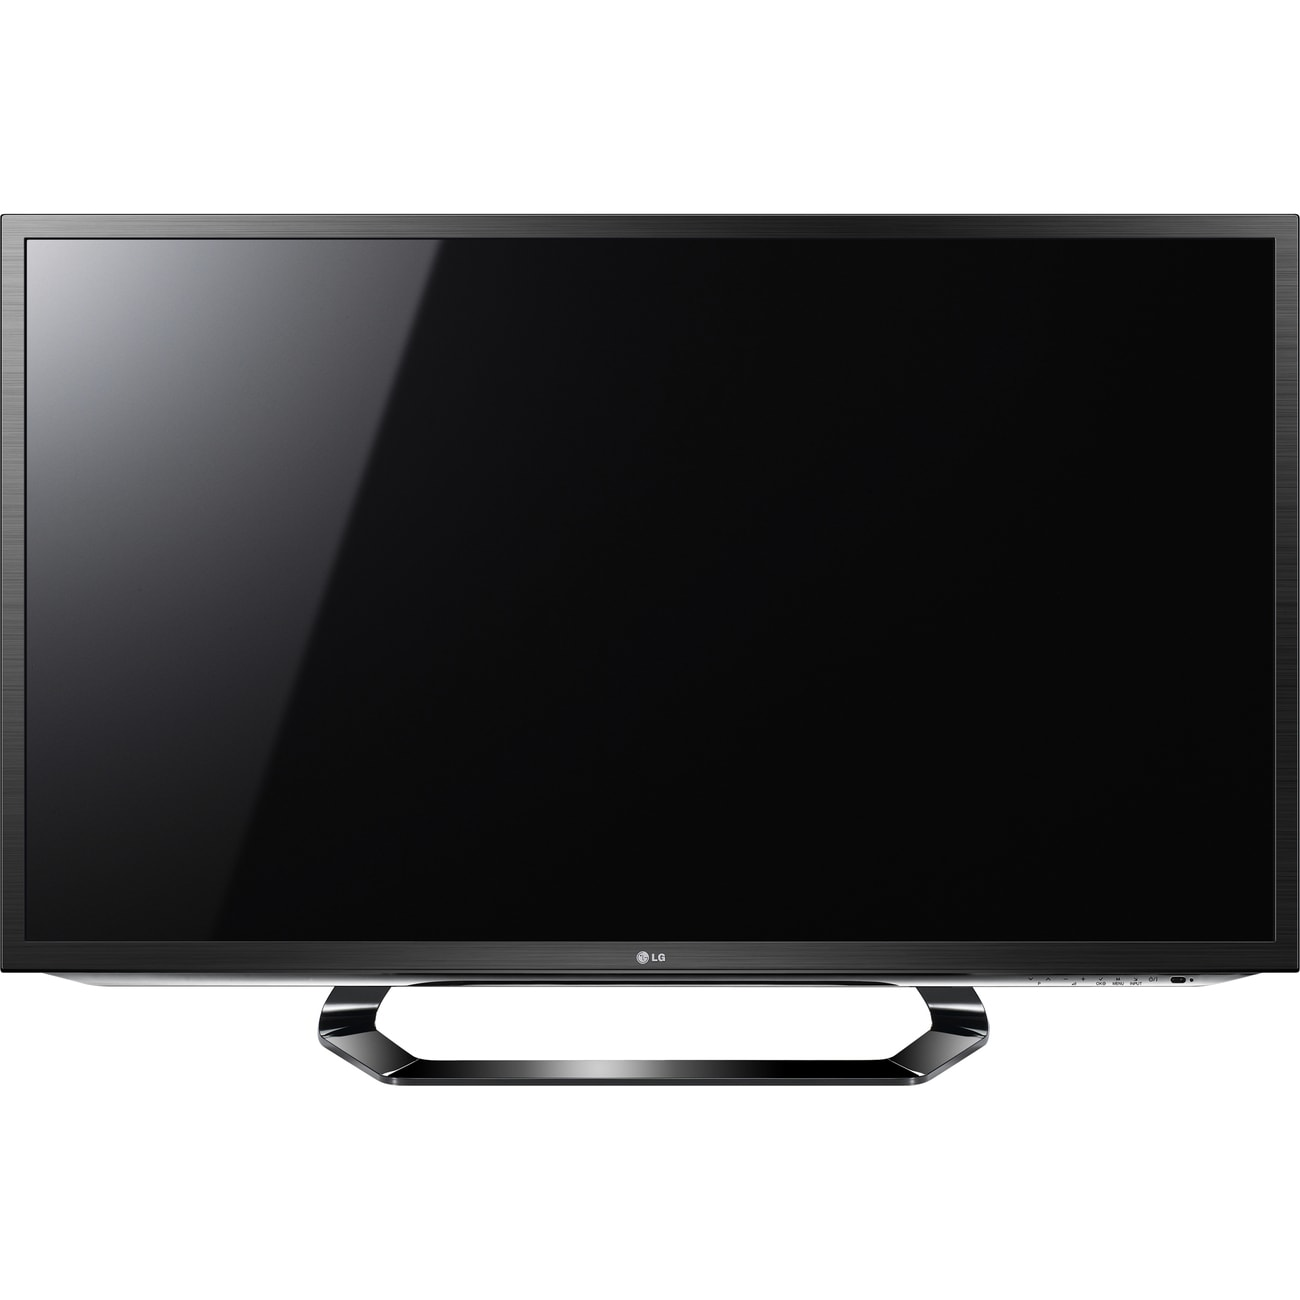 "LG 65LM6200 65"" 3D 1080p LED-LCD TV - 16:9 - HDTV 1080p - 120 Hz"